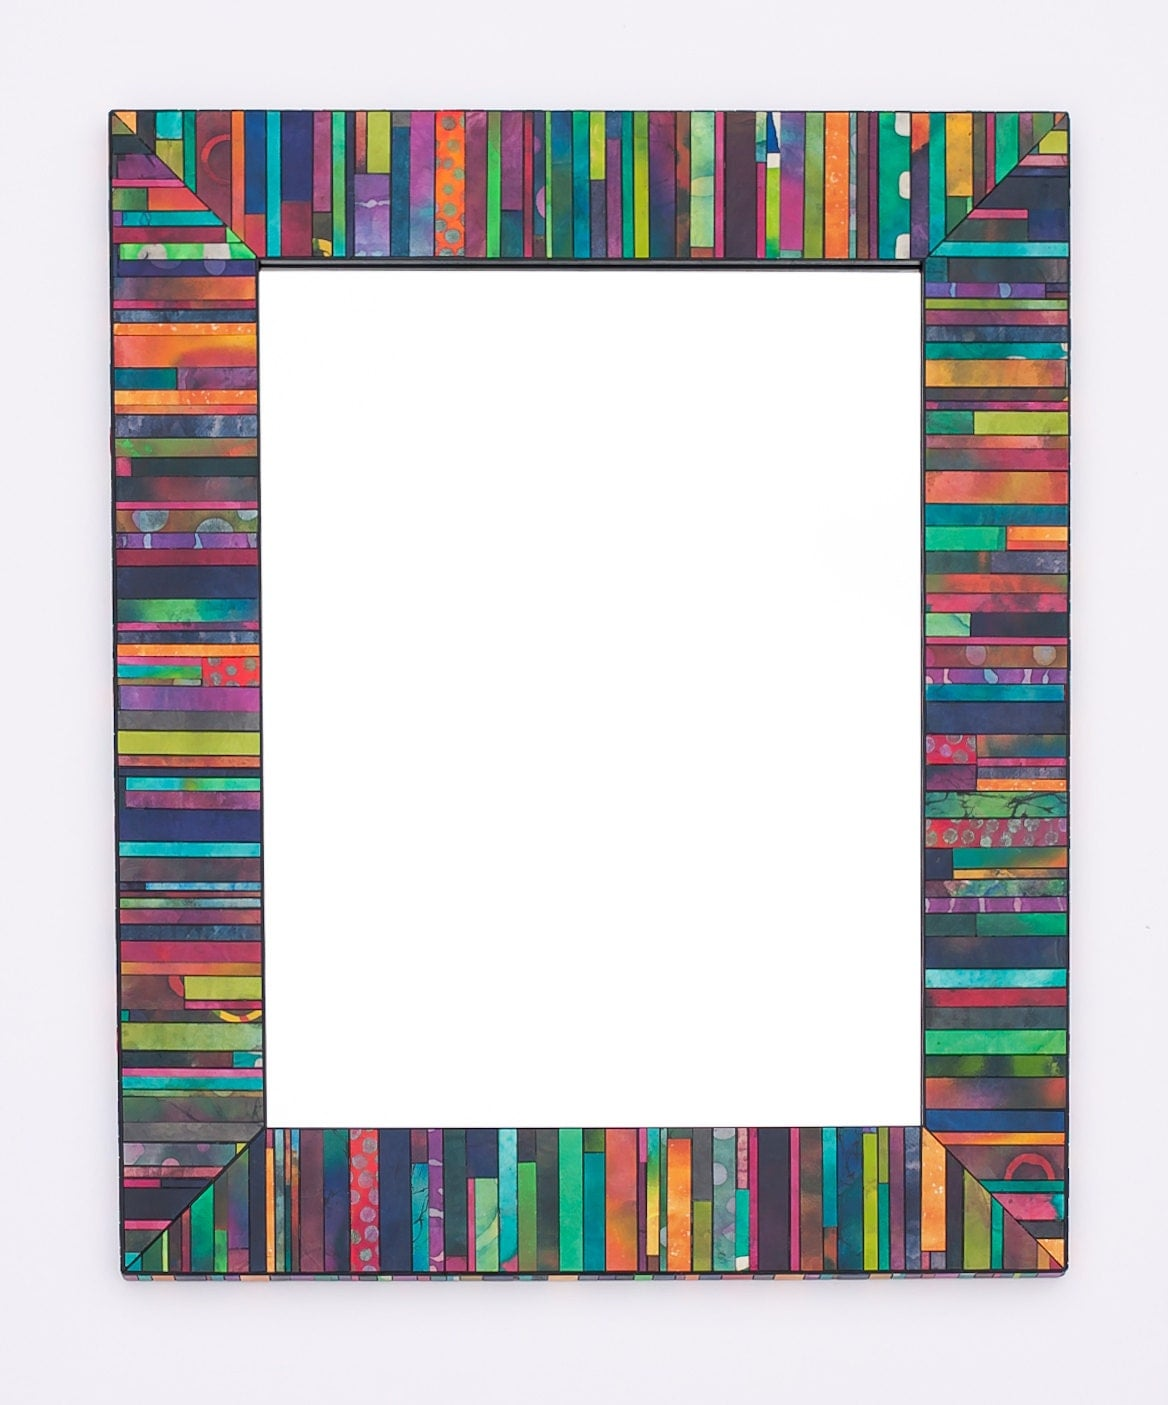 Wall Mirror Rectangle Colorful Geometric Striped Mosaic